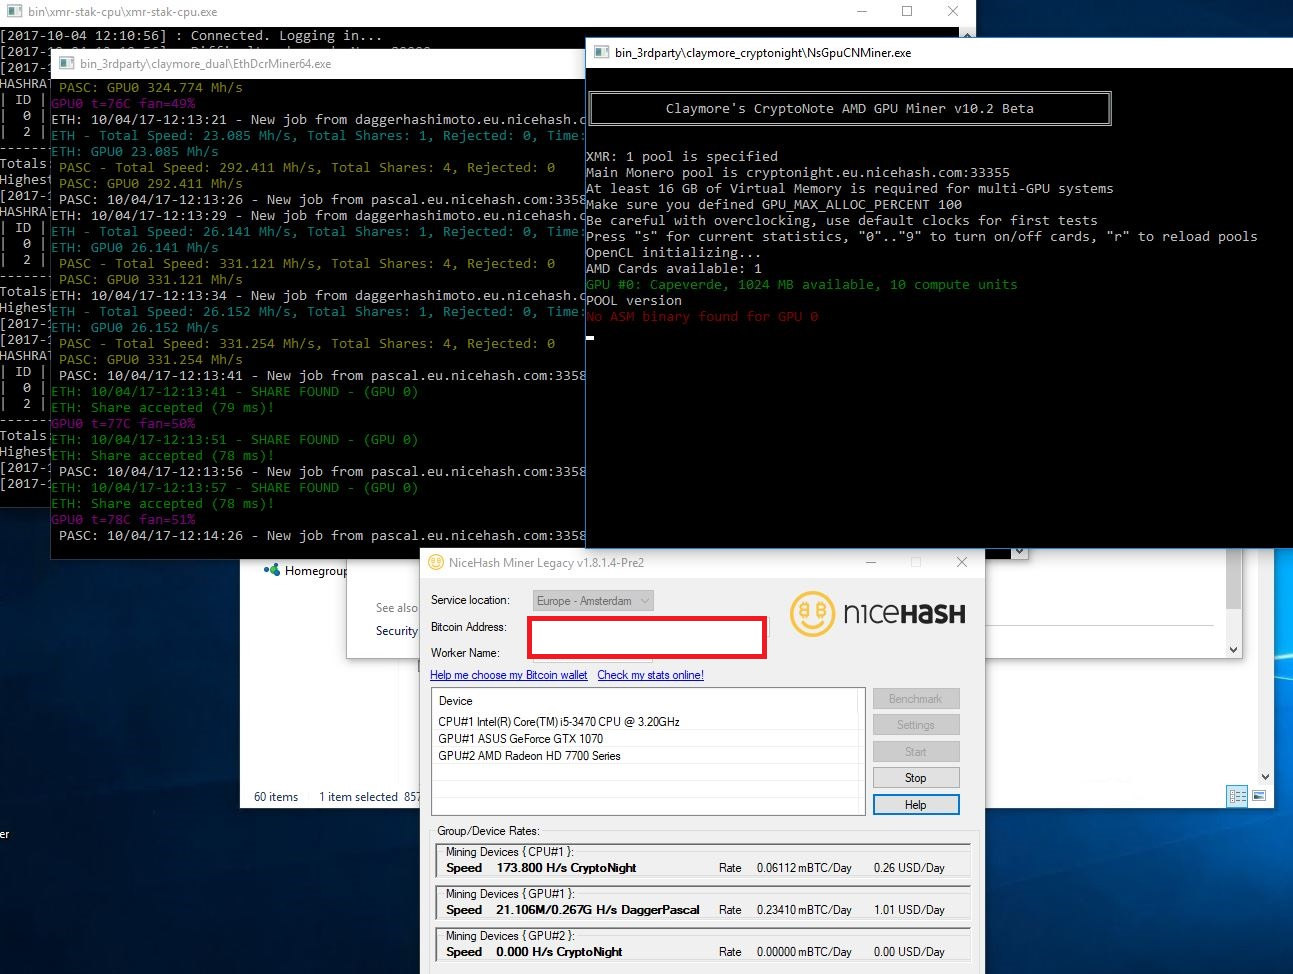 Claymore Cryptonote Gpu Miner claymore cryptonote amd gpu miner does not work · issue #396